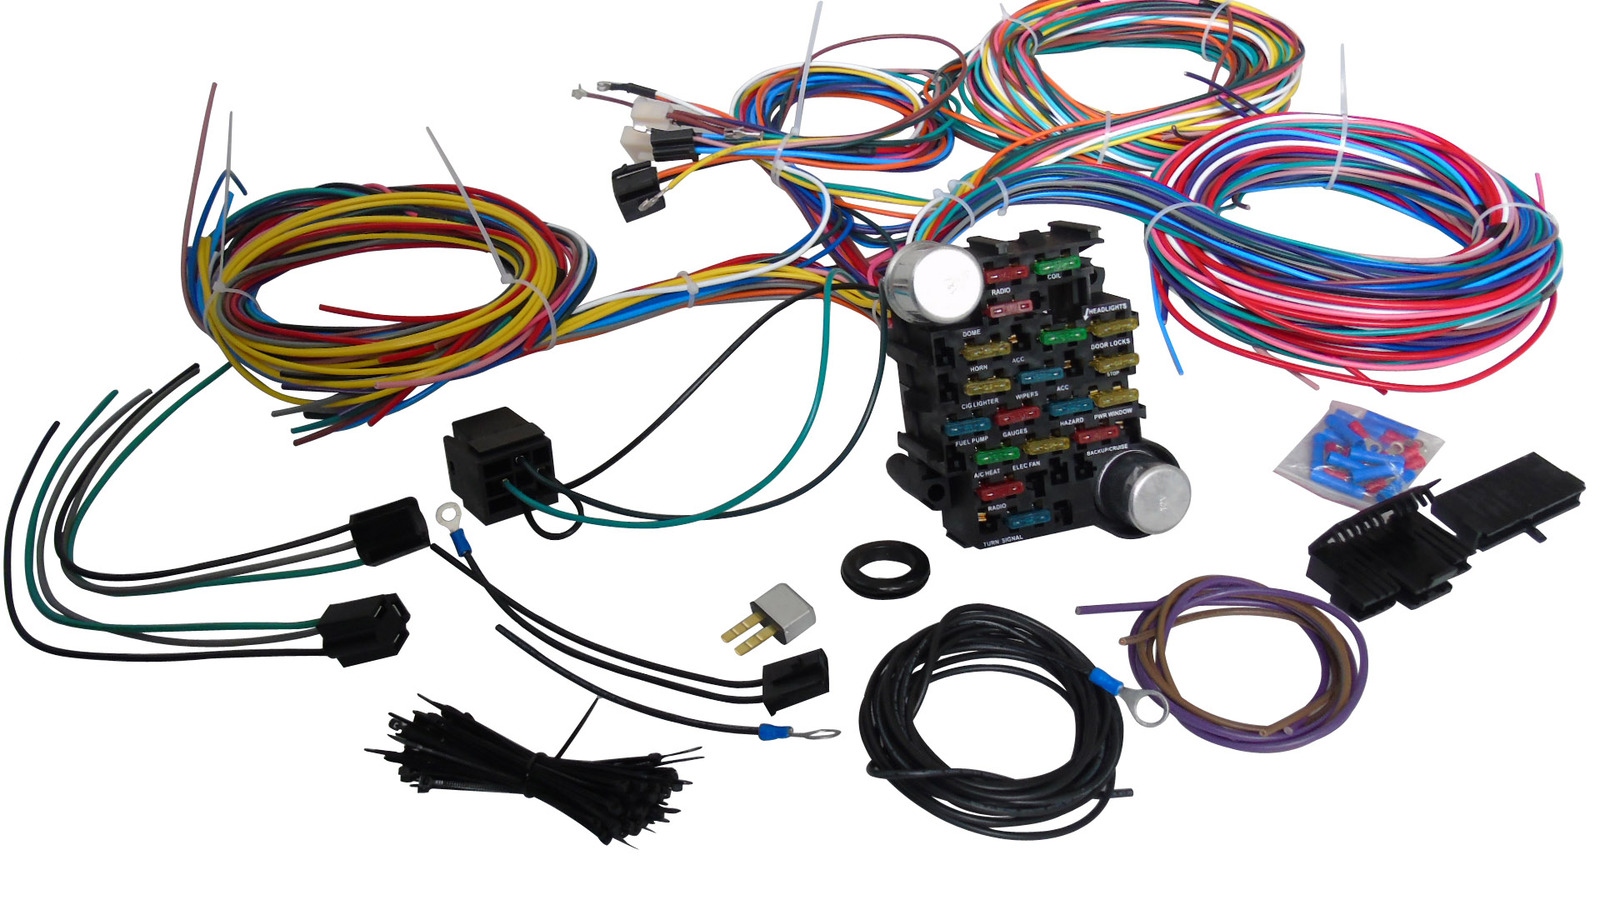 Street Rod Wiring Harness Kit Simple Diagram Posts Vw Rebel Kits For Rods Diagrams Ford Truck